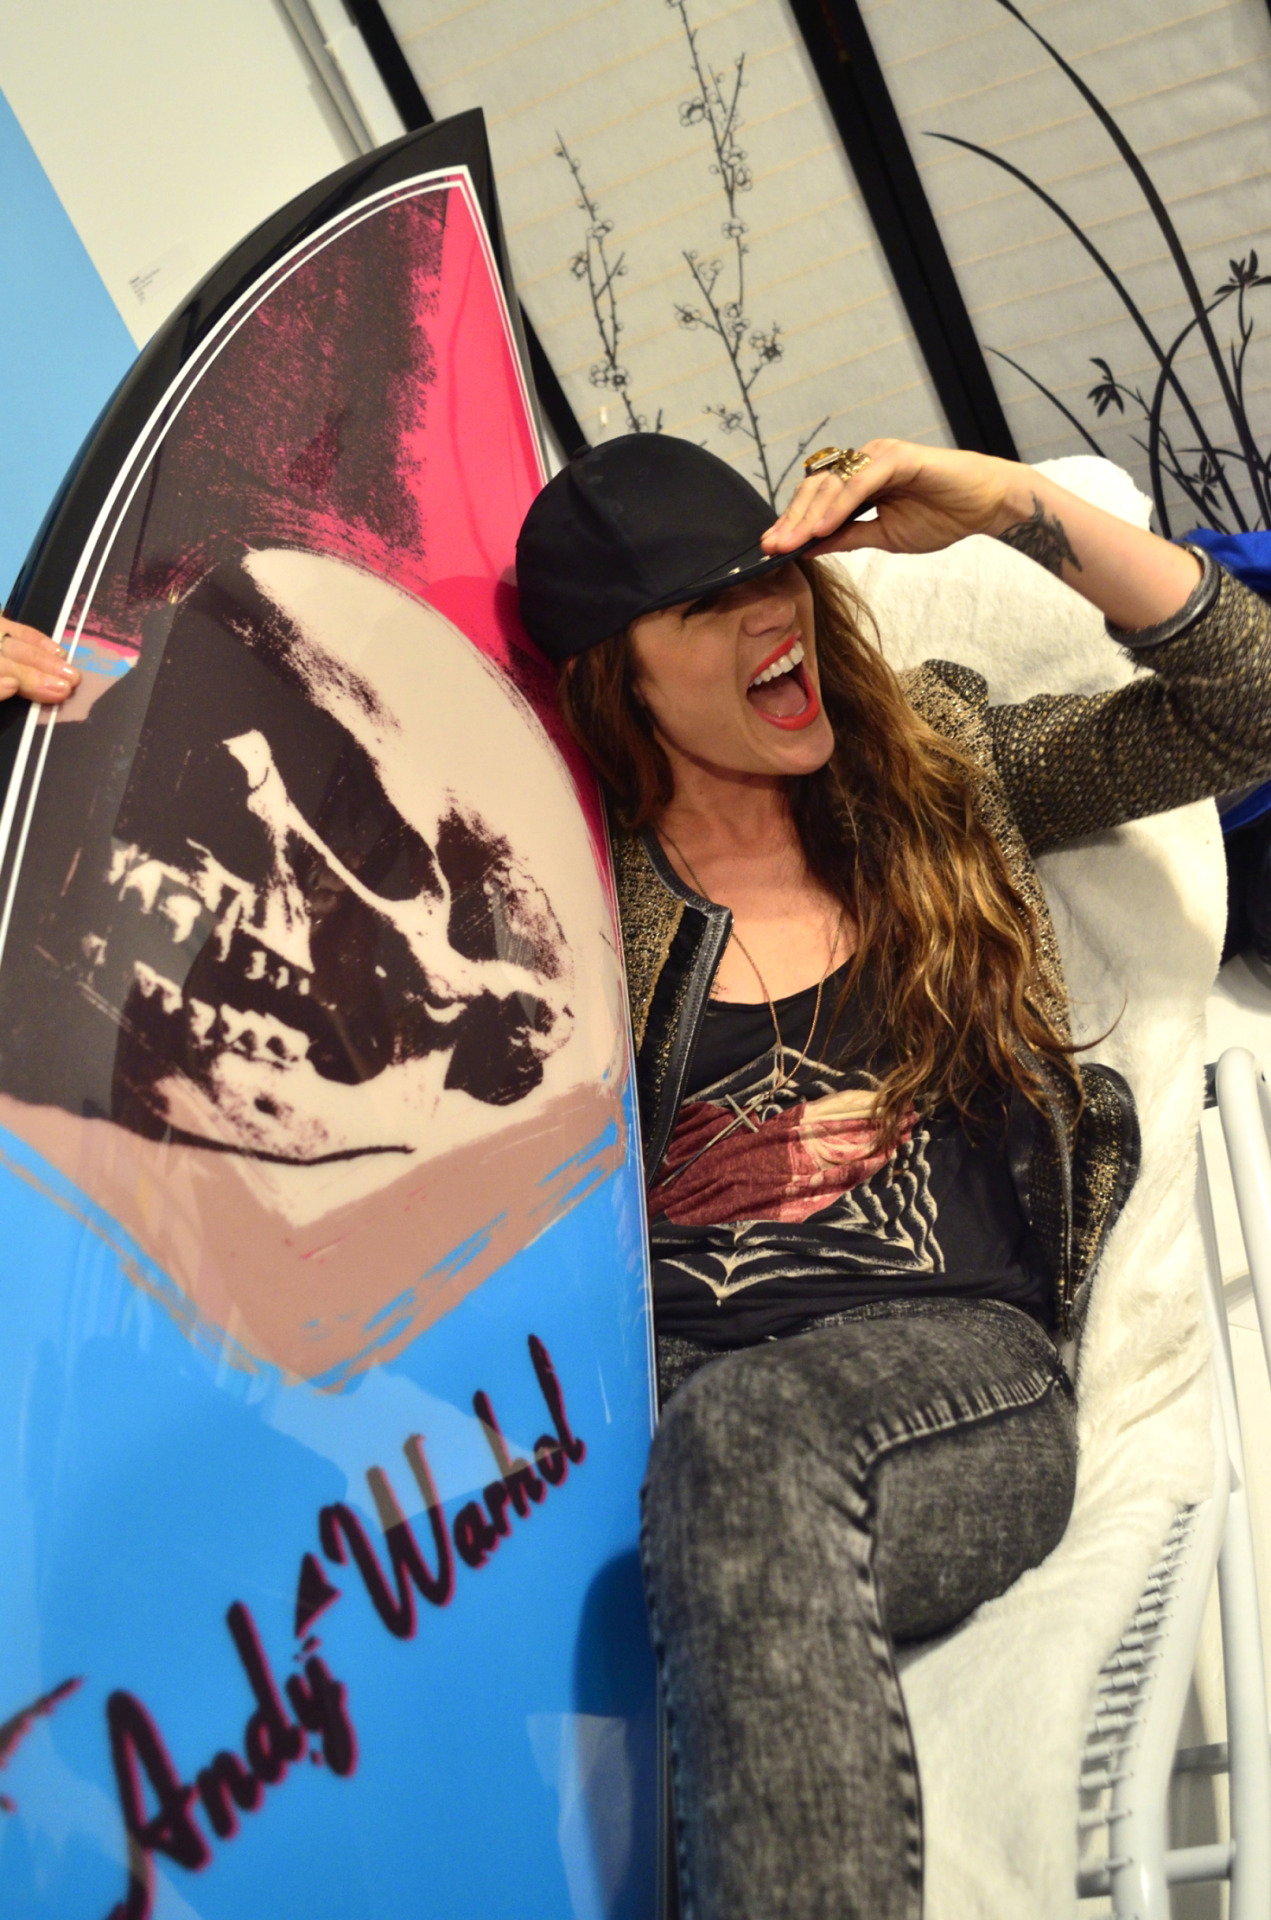 Having fun with a limited edition Andy Warhol surfboard by artist Tim Bessell at the Grand Opening of the SPiN Galleries in Chelsea, New York City.